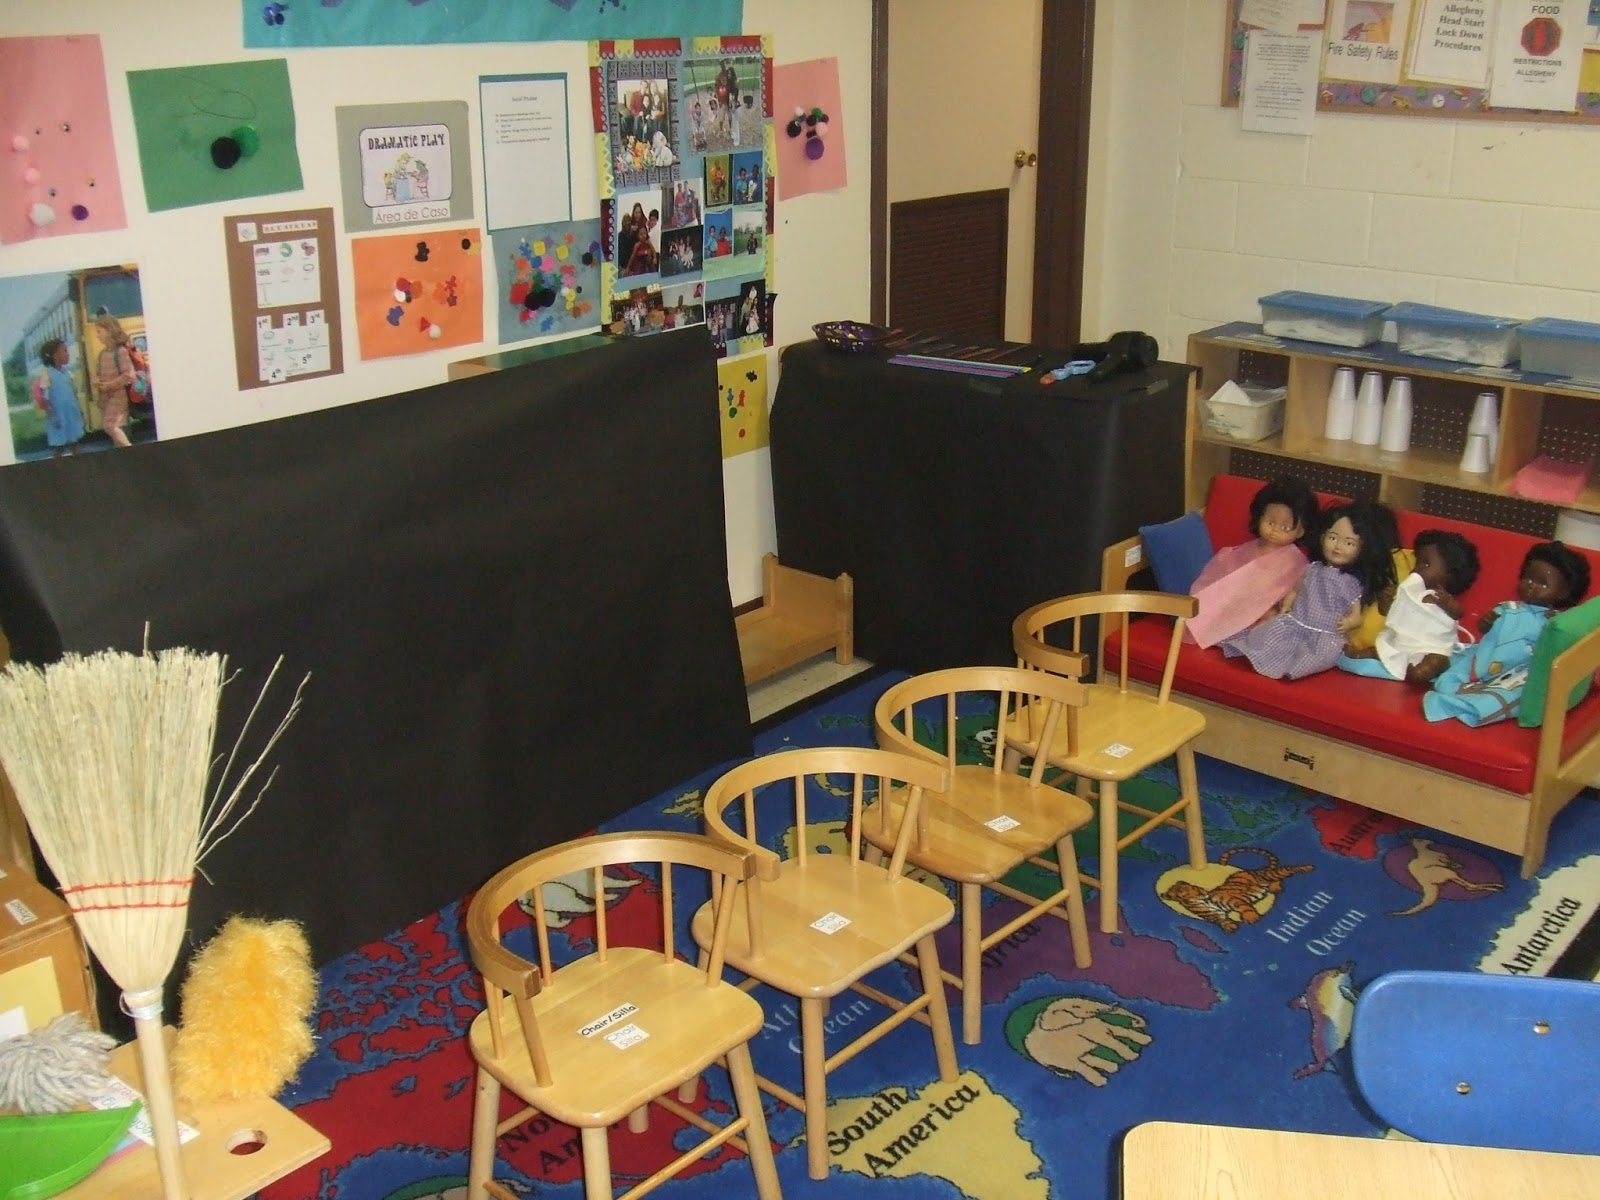 Barber Shop In The Area : Here is the barber shop we set up in dramatic play area. As you can ...